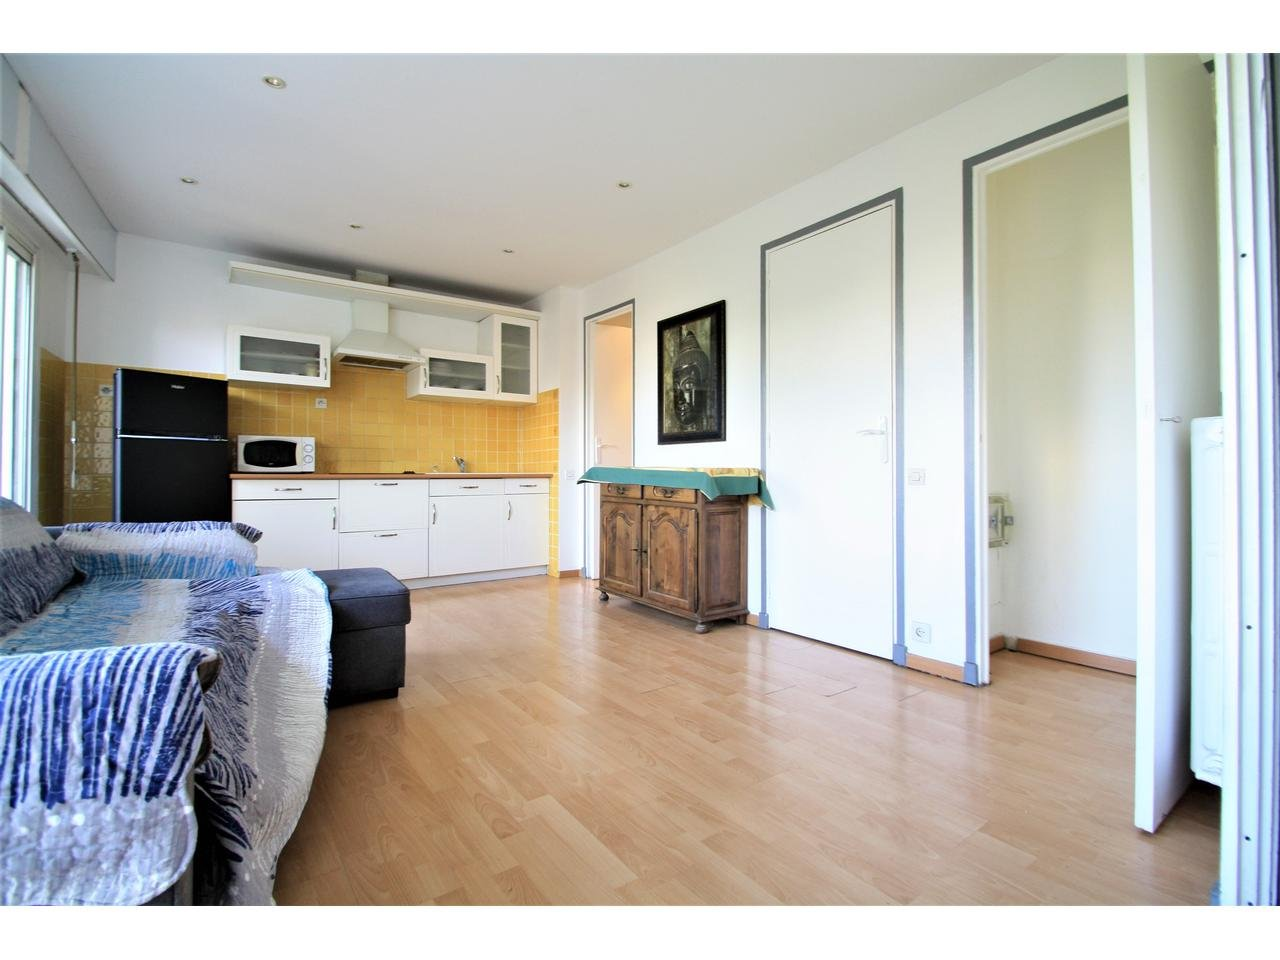 1 bedroom apartment with large terrace - 10 min from the Croisette